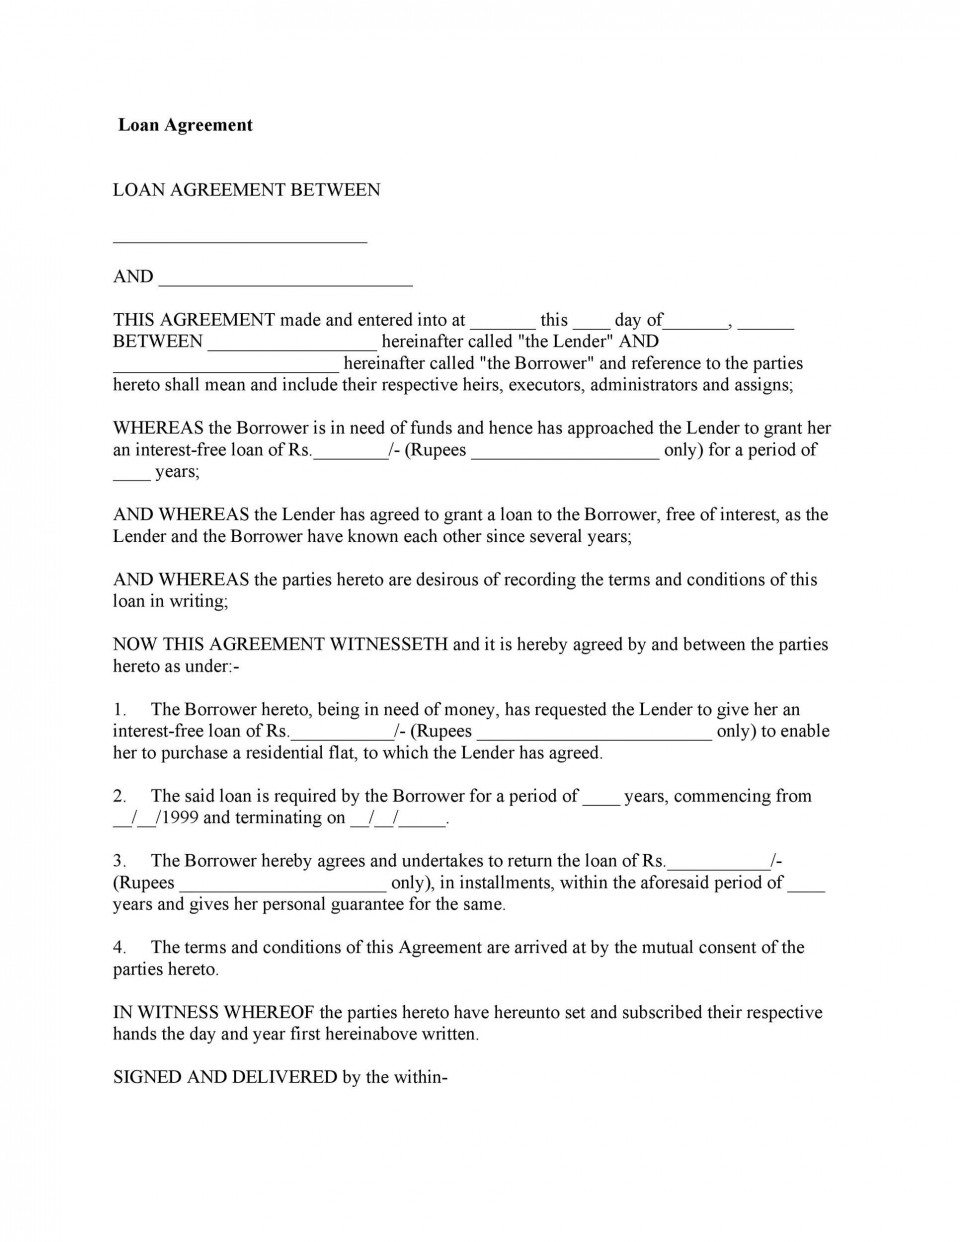 009 Fascinating Family Loan Agreement Template Image  Nz Uk Free960